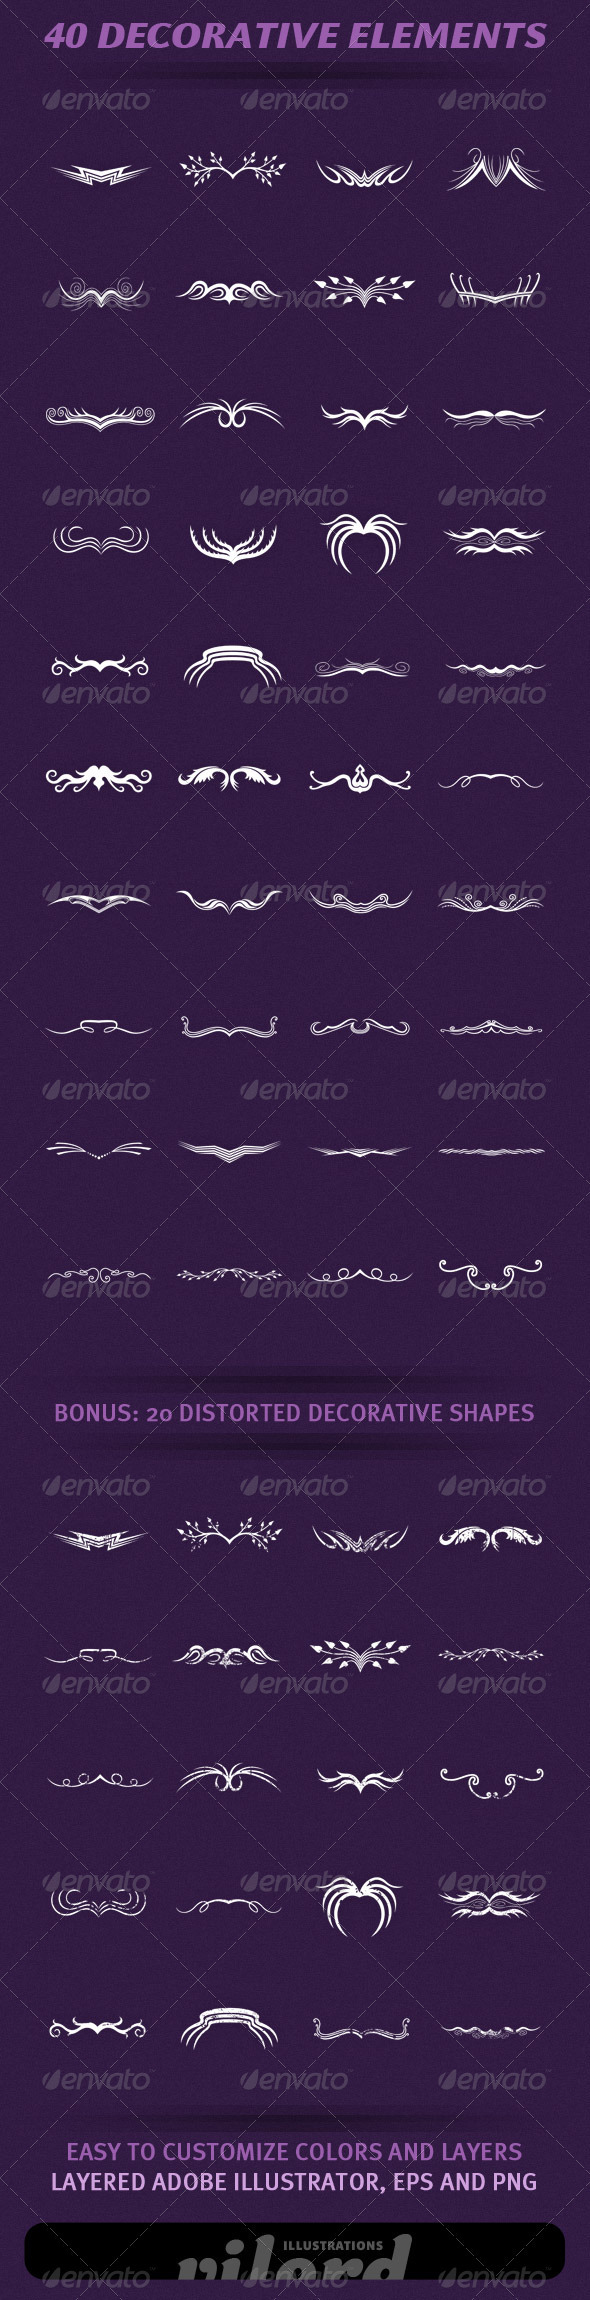 40 Decorative Elements